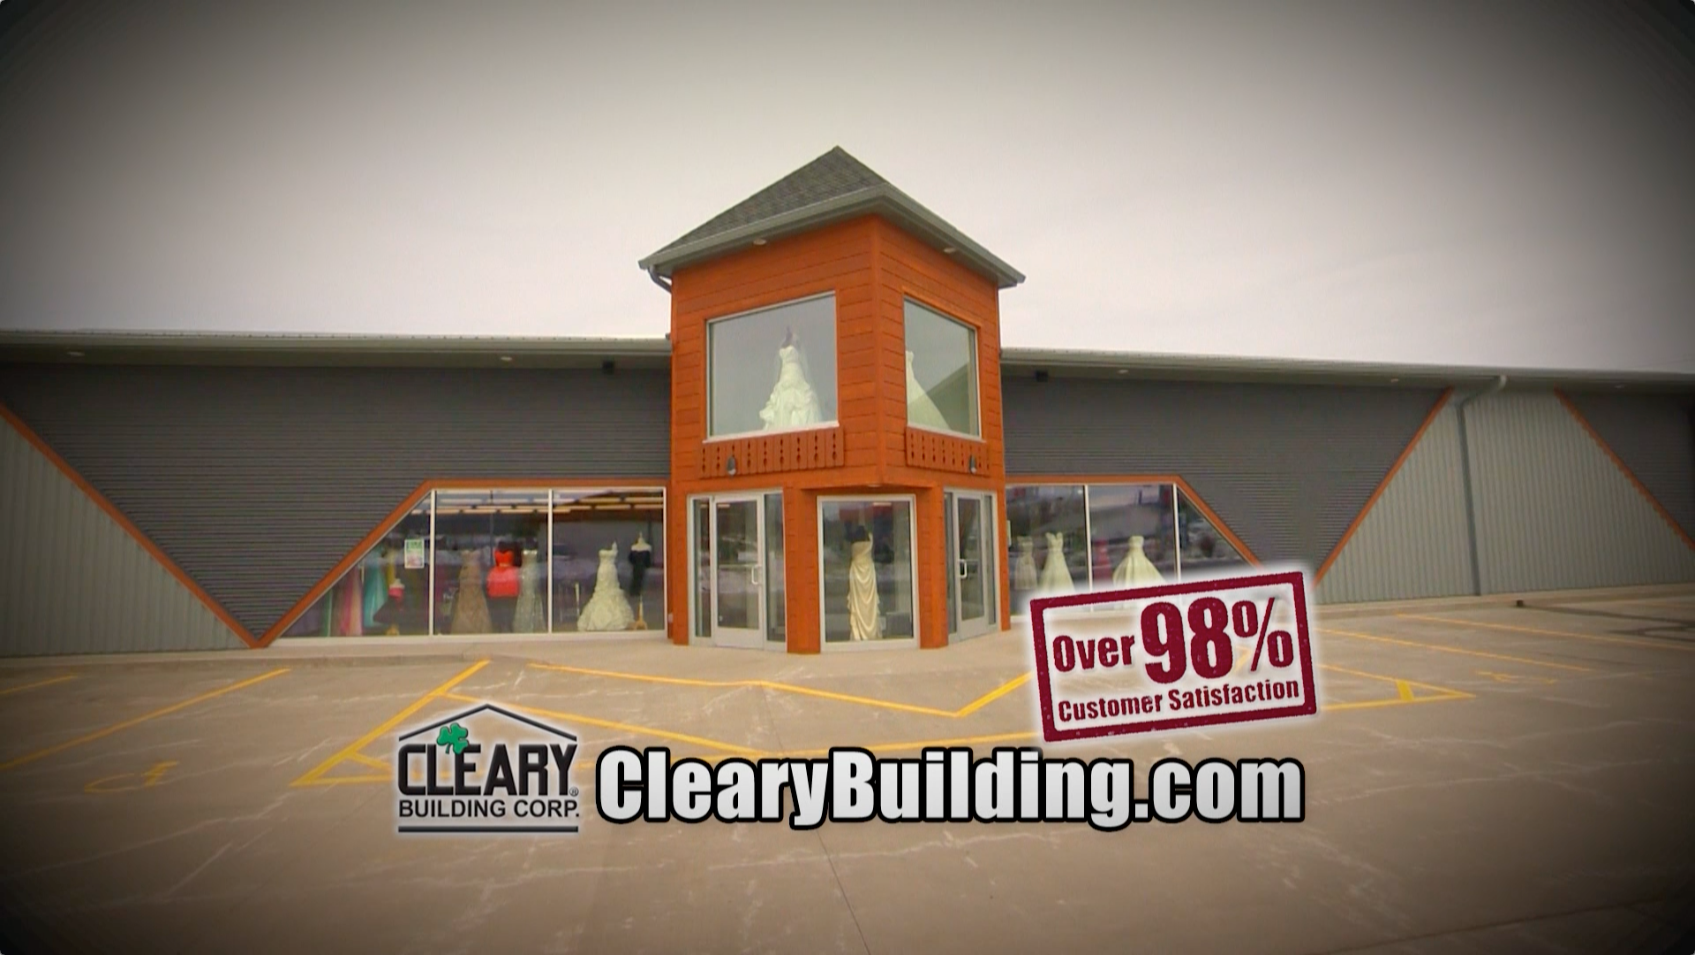 Cleary Building Corp Cleary Tough